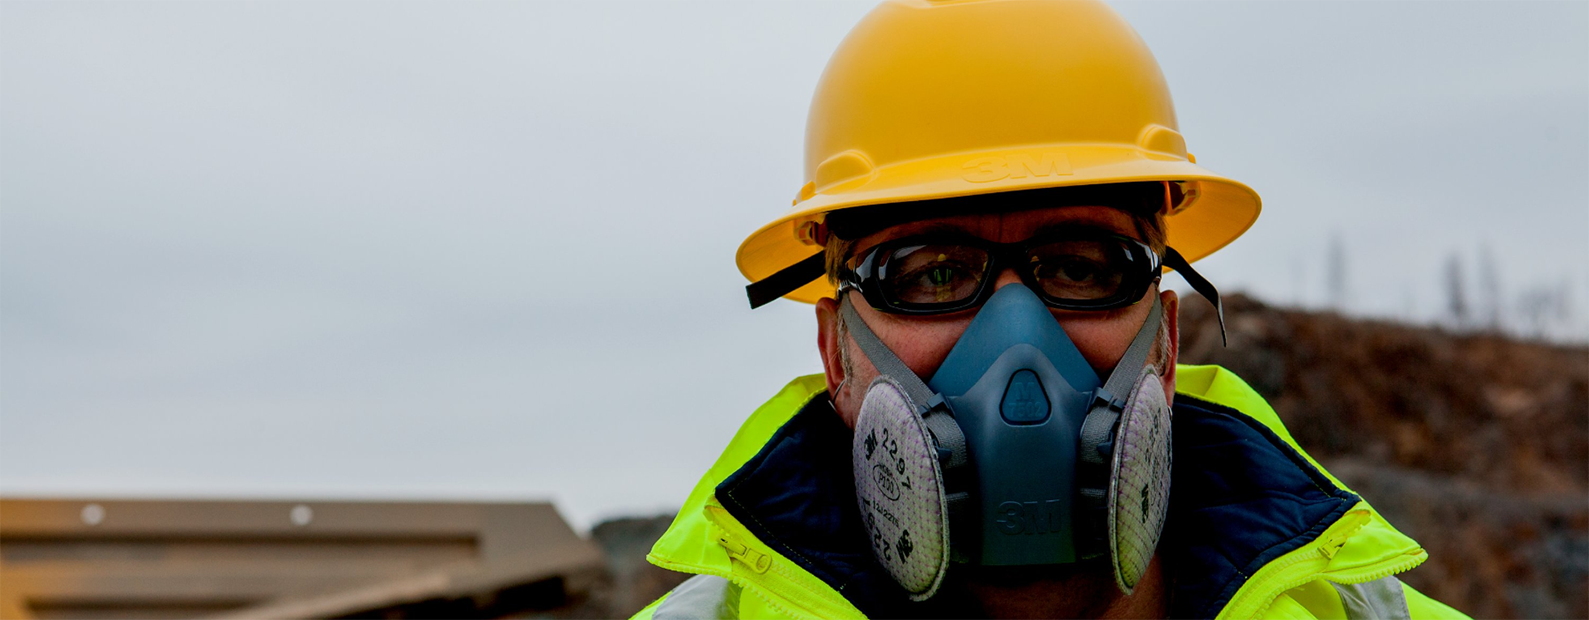 Man wearing hard hat, respirator, and eye protection.